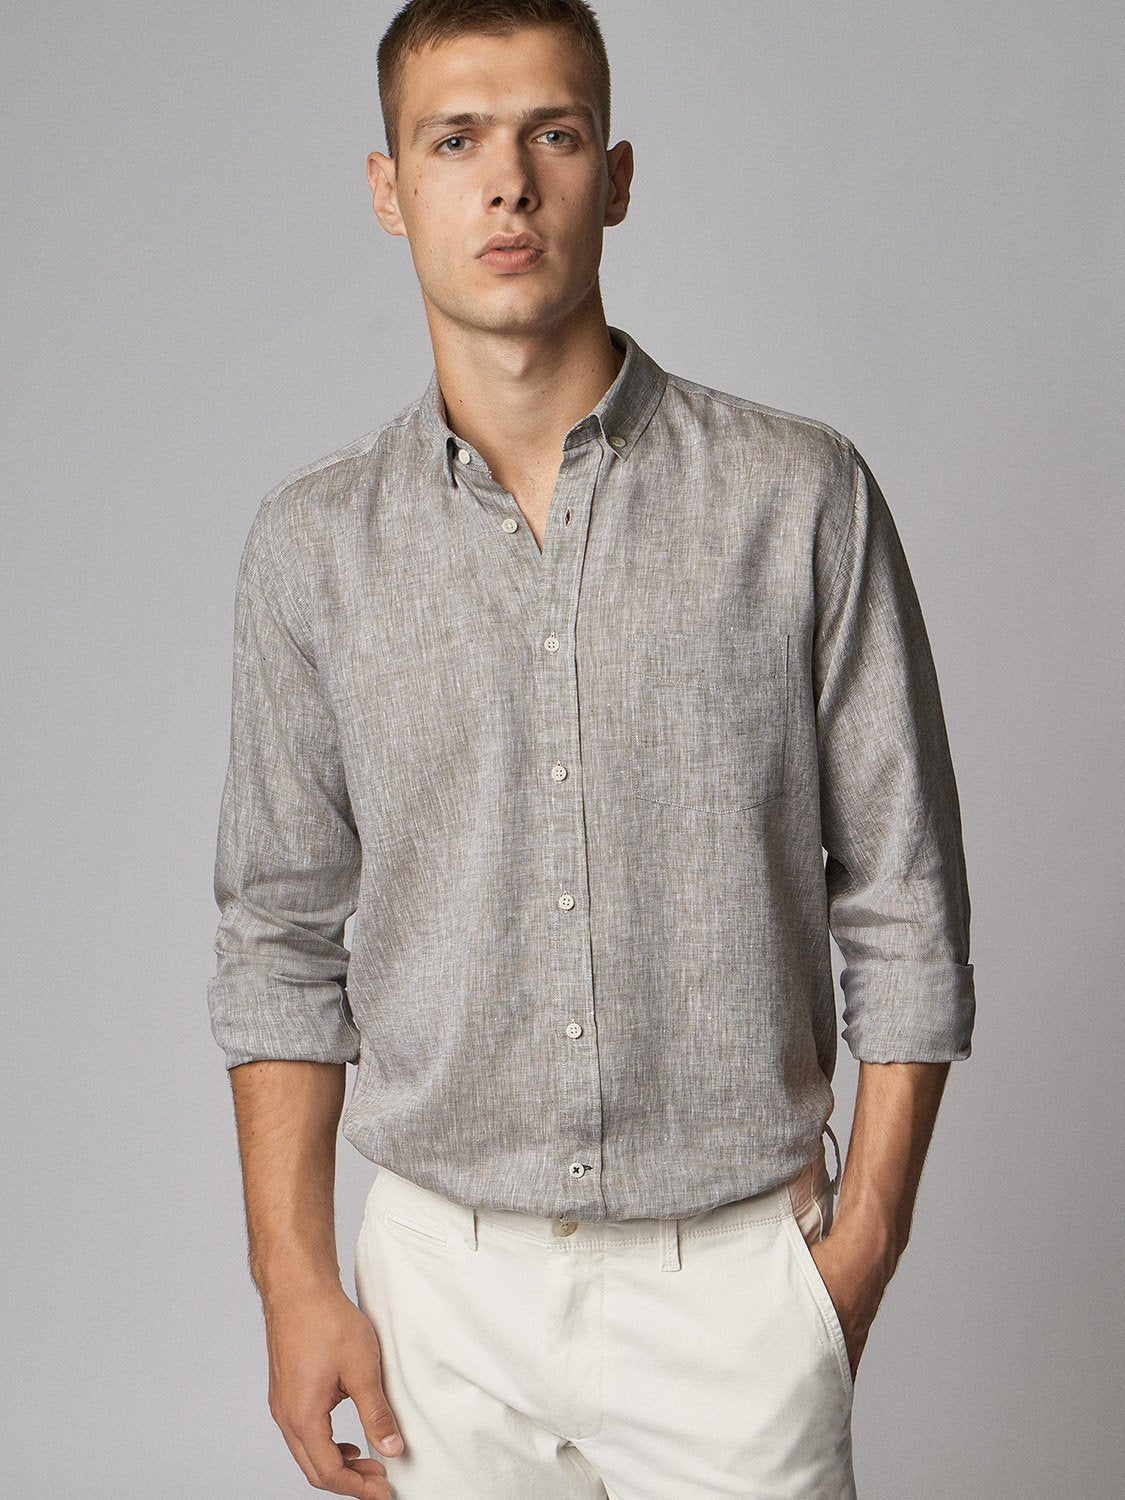 carpasus sustainable organic linen shirt single color khaki. Nachhaltiges Carpasus Hemd aus Bio Leinen in Khaki